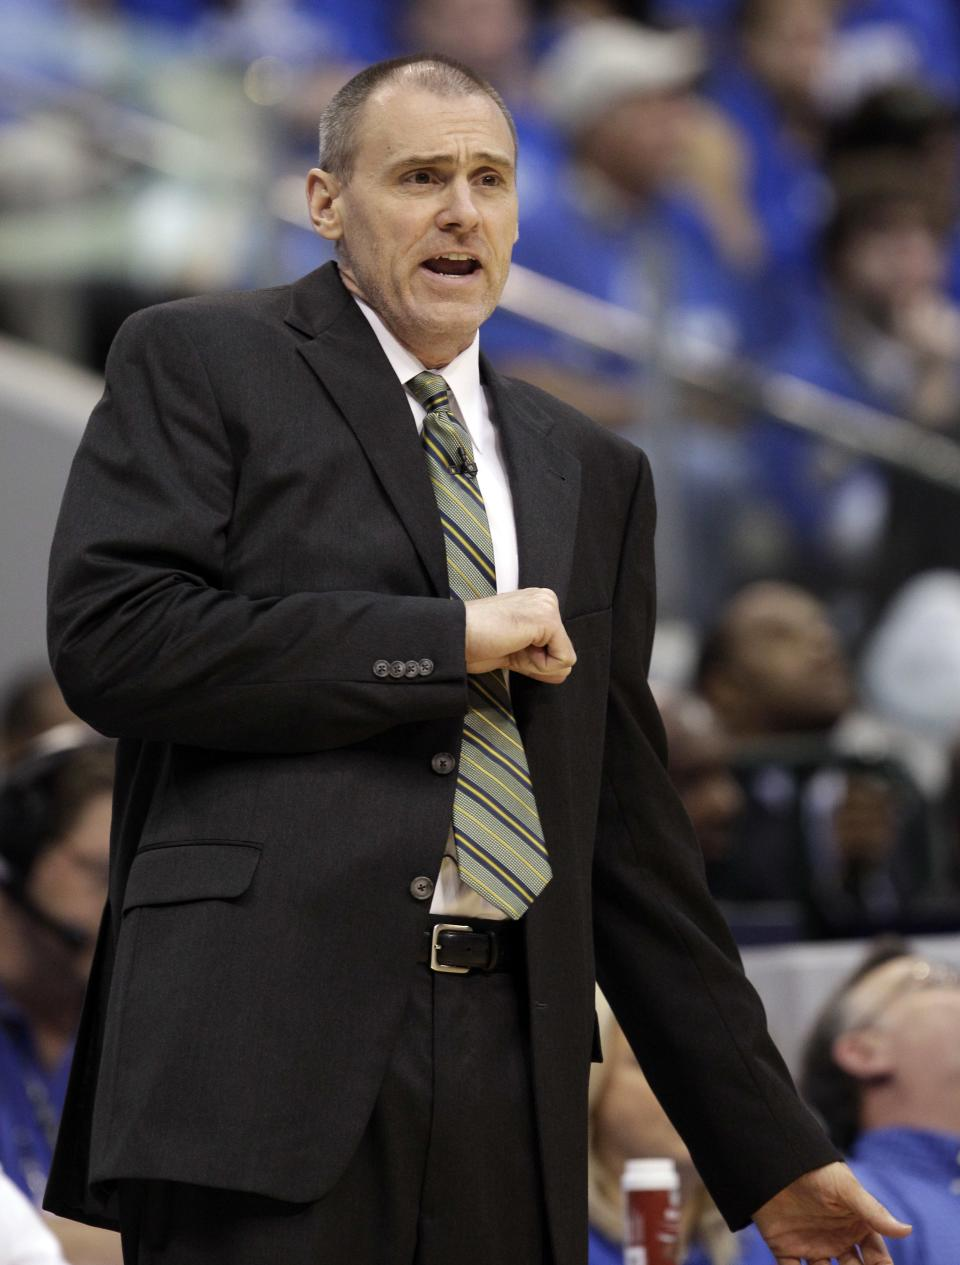 Dallas Mavericks head coach Rick Carlisle reacts during the first half of Game 5 of the NBA Finals basketball game against the Miami Heat Thursday, June 9, 2011, in Dallas. (AP Photo/David J. Phillip)